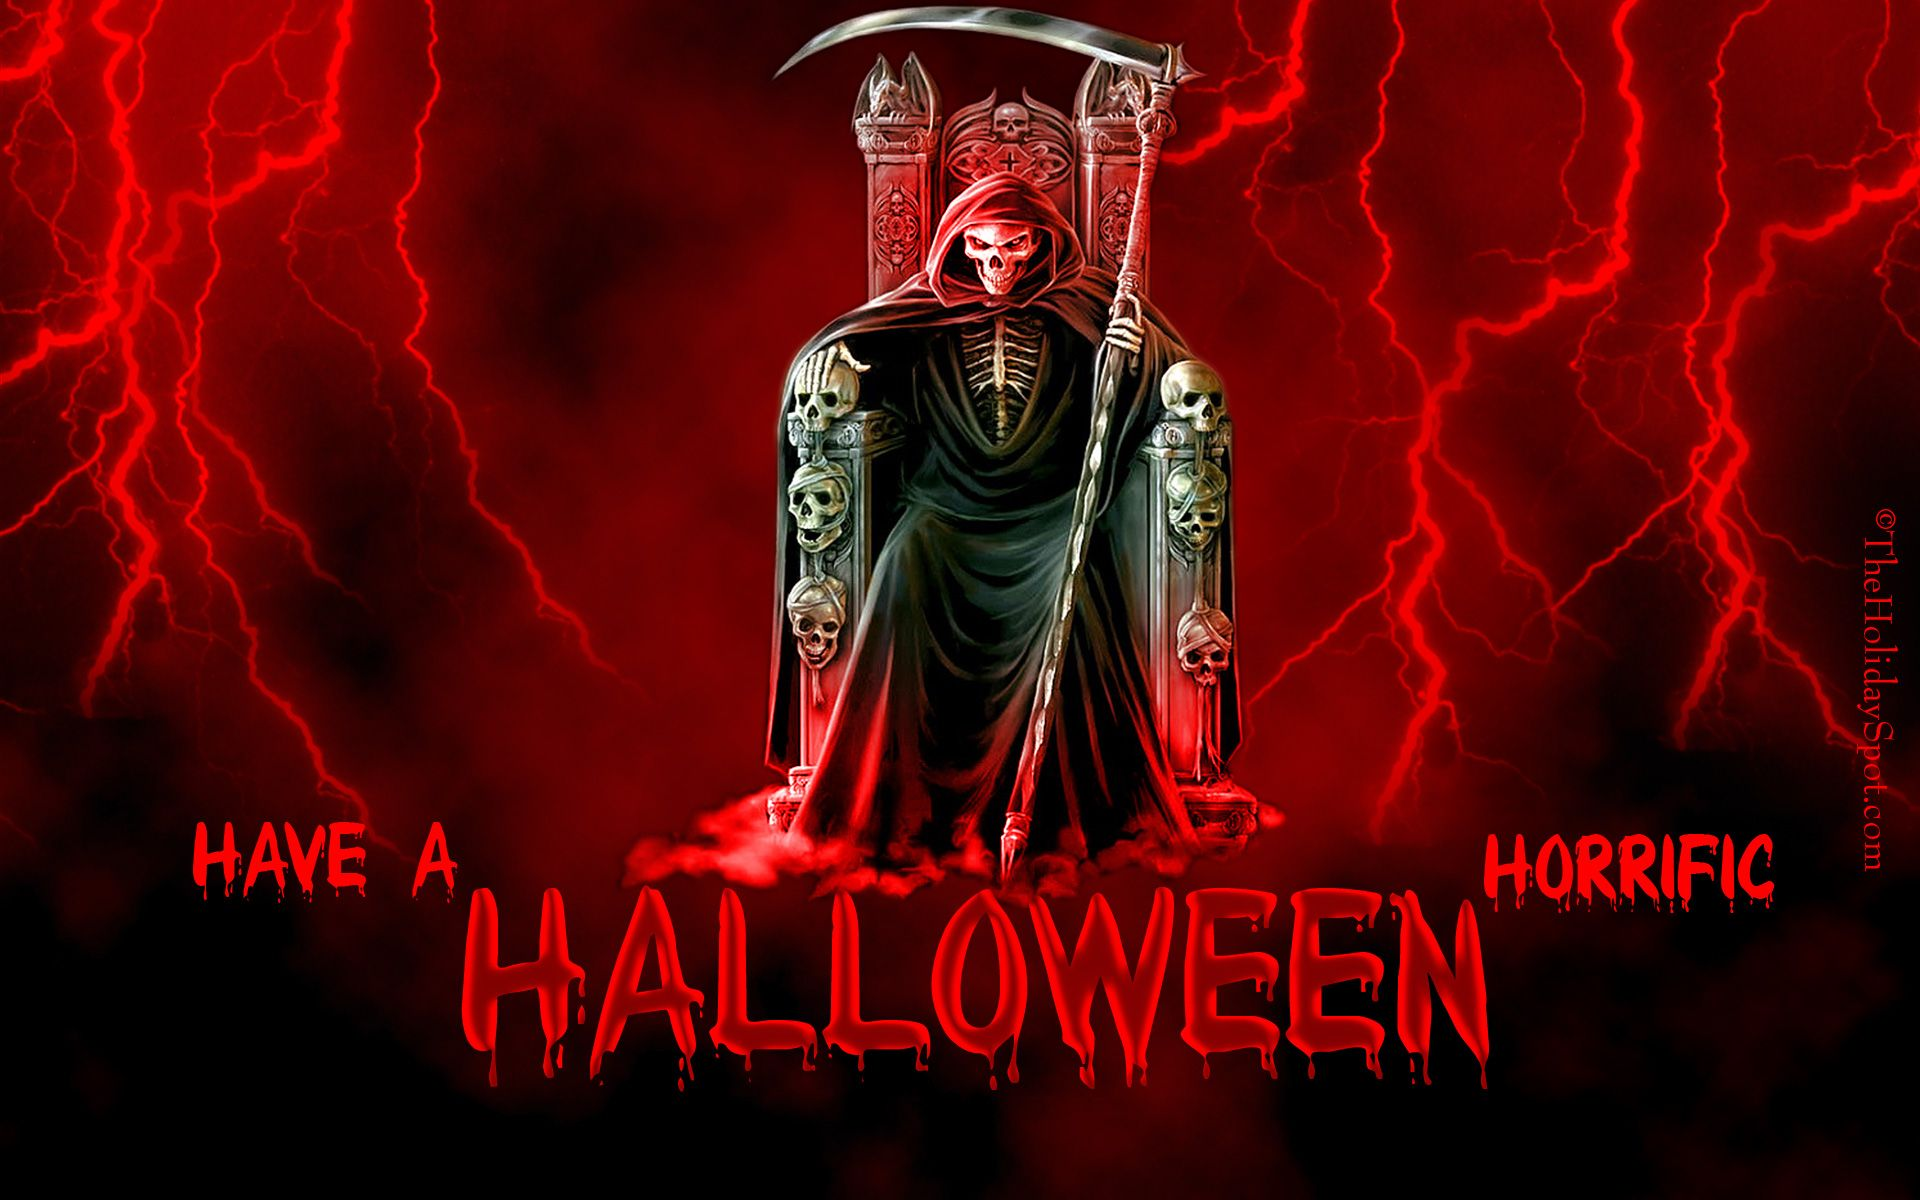 holiday halloween holiday scythe red grim reaper throne lightning wallpaper